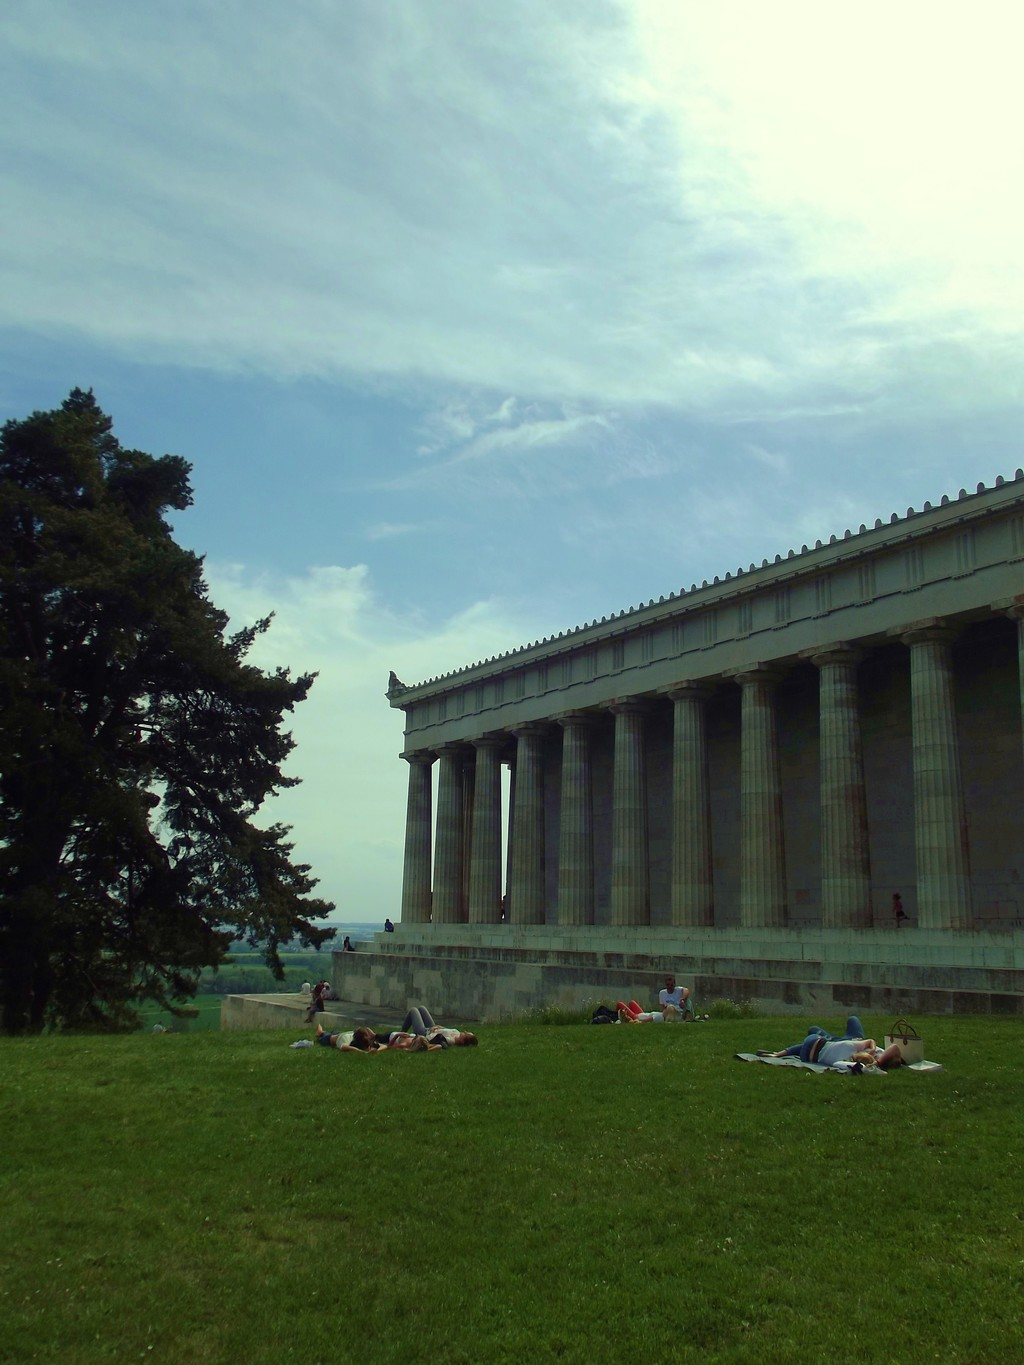 The Walhalla: the palace in memory of the most important personalities of the German culture and history